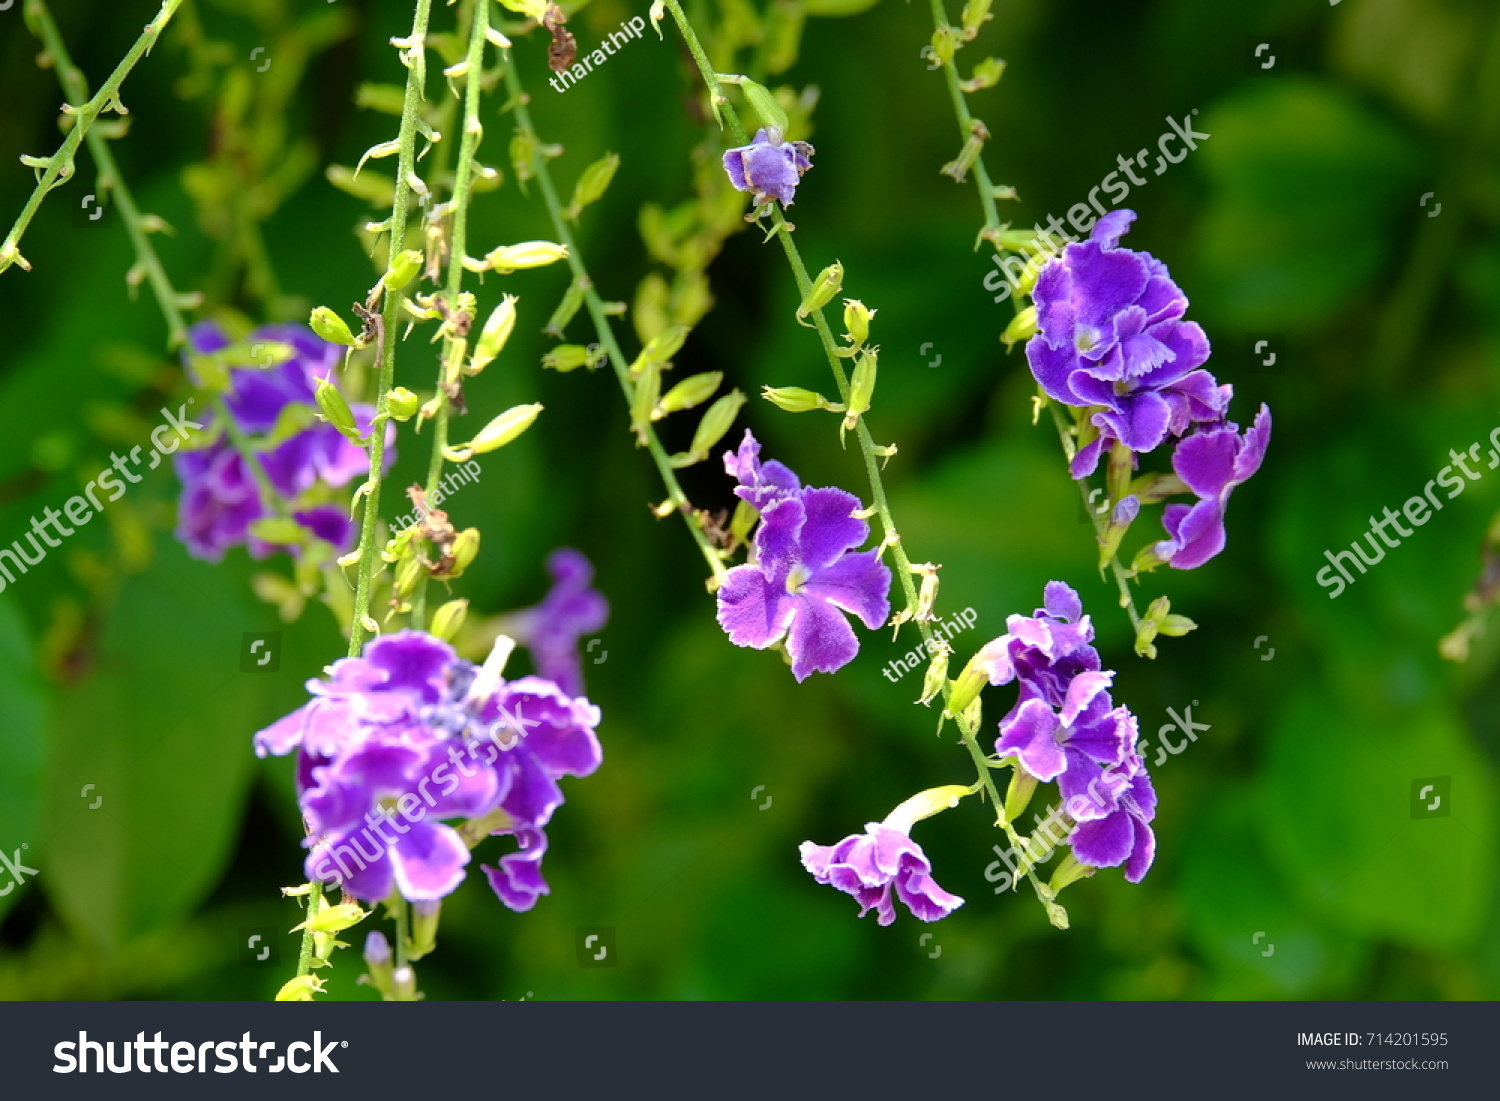 Purple flowers and small white flowers with bright green leaves id 714201595 mightylinksfo